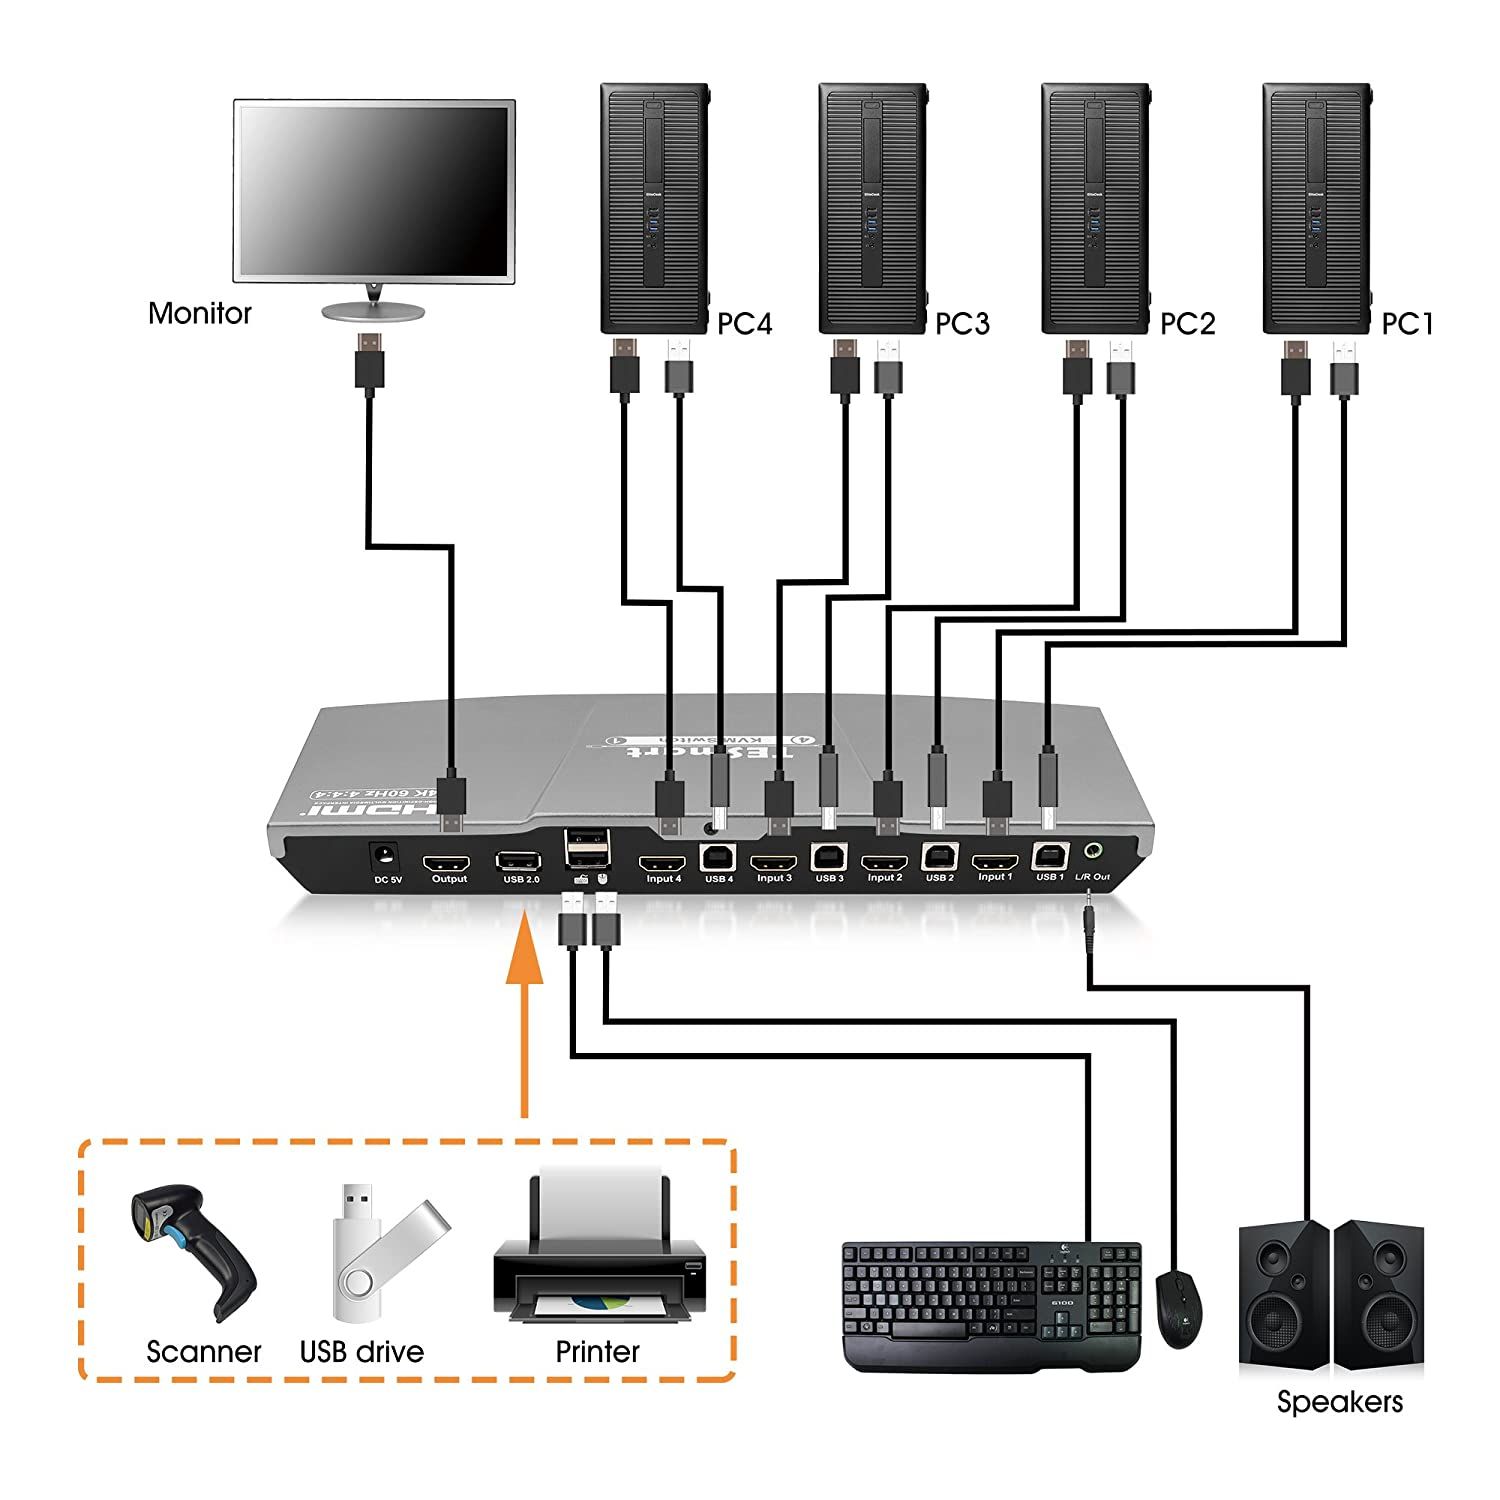 Includes 2 Cables w//USB /& Remote Connect Multiple PCs, Laptops, Gaming Consoles to 1 Video Monitor, Keyboard /& Mouse 4K 60Hz Ultra HD TESmart KVM Switch 4 Port HDMI Multimedia with Audio Output